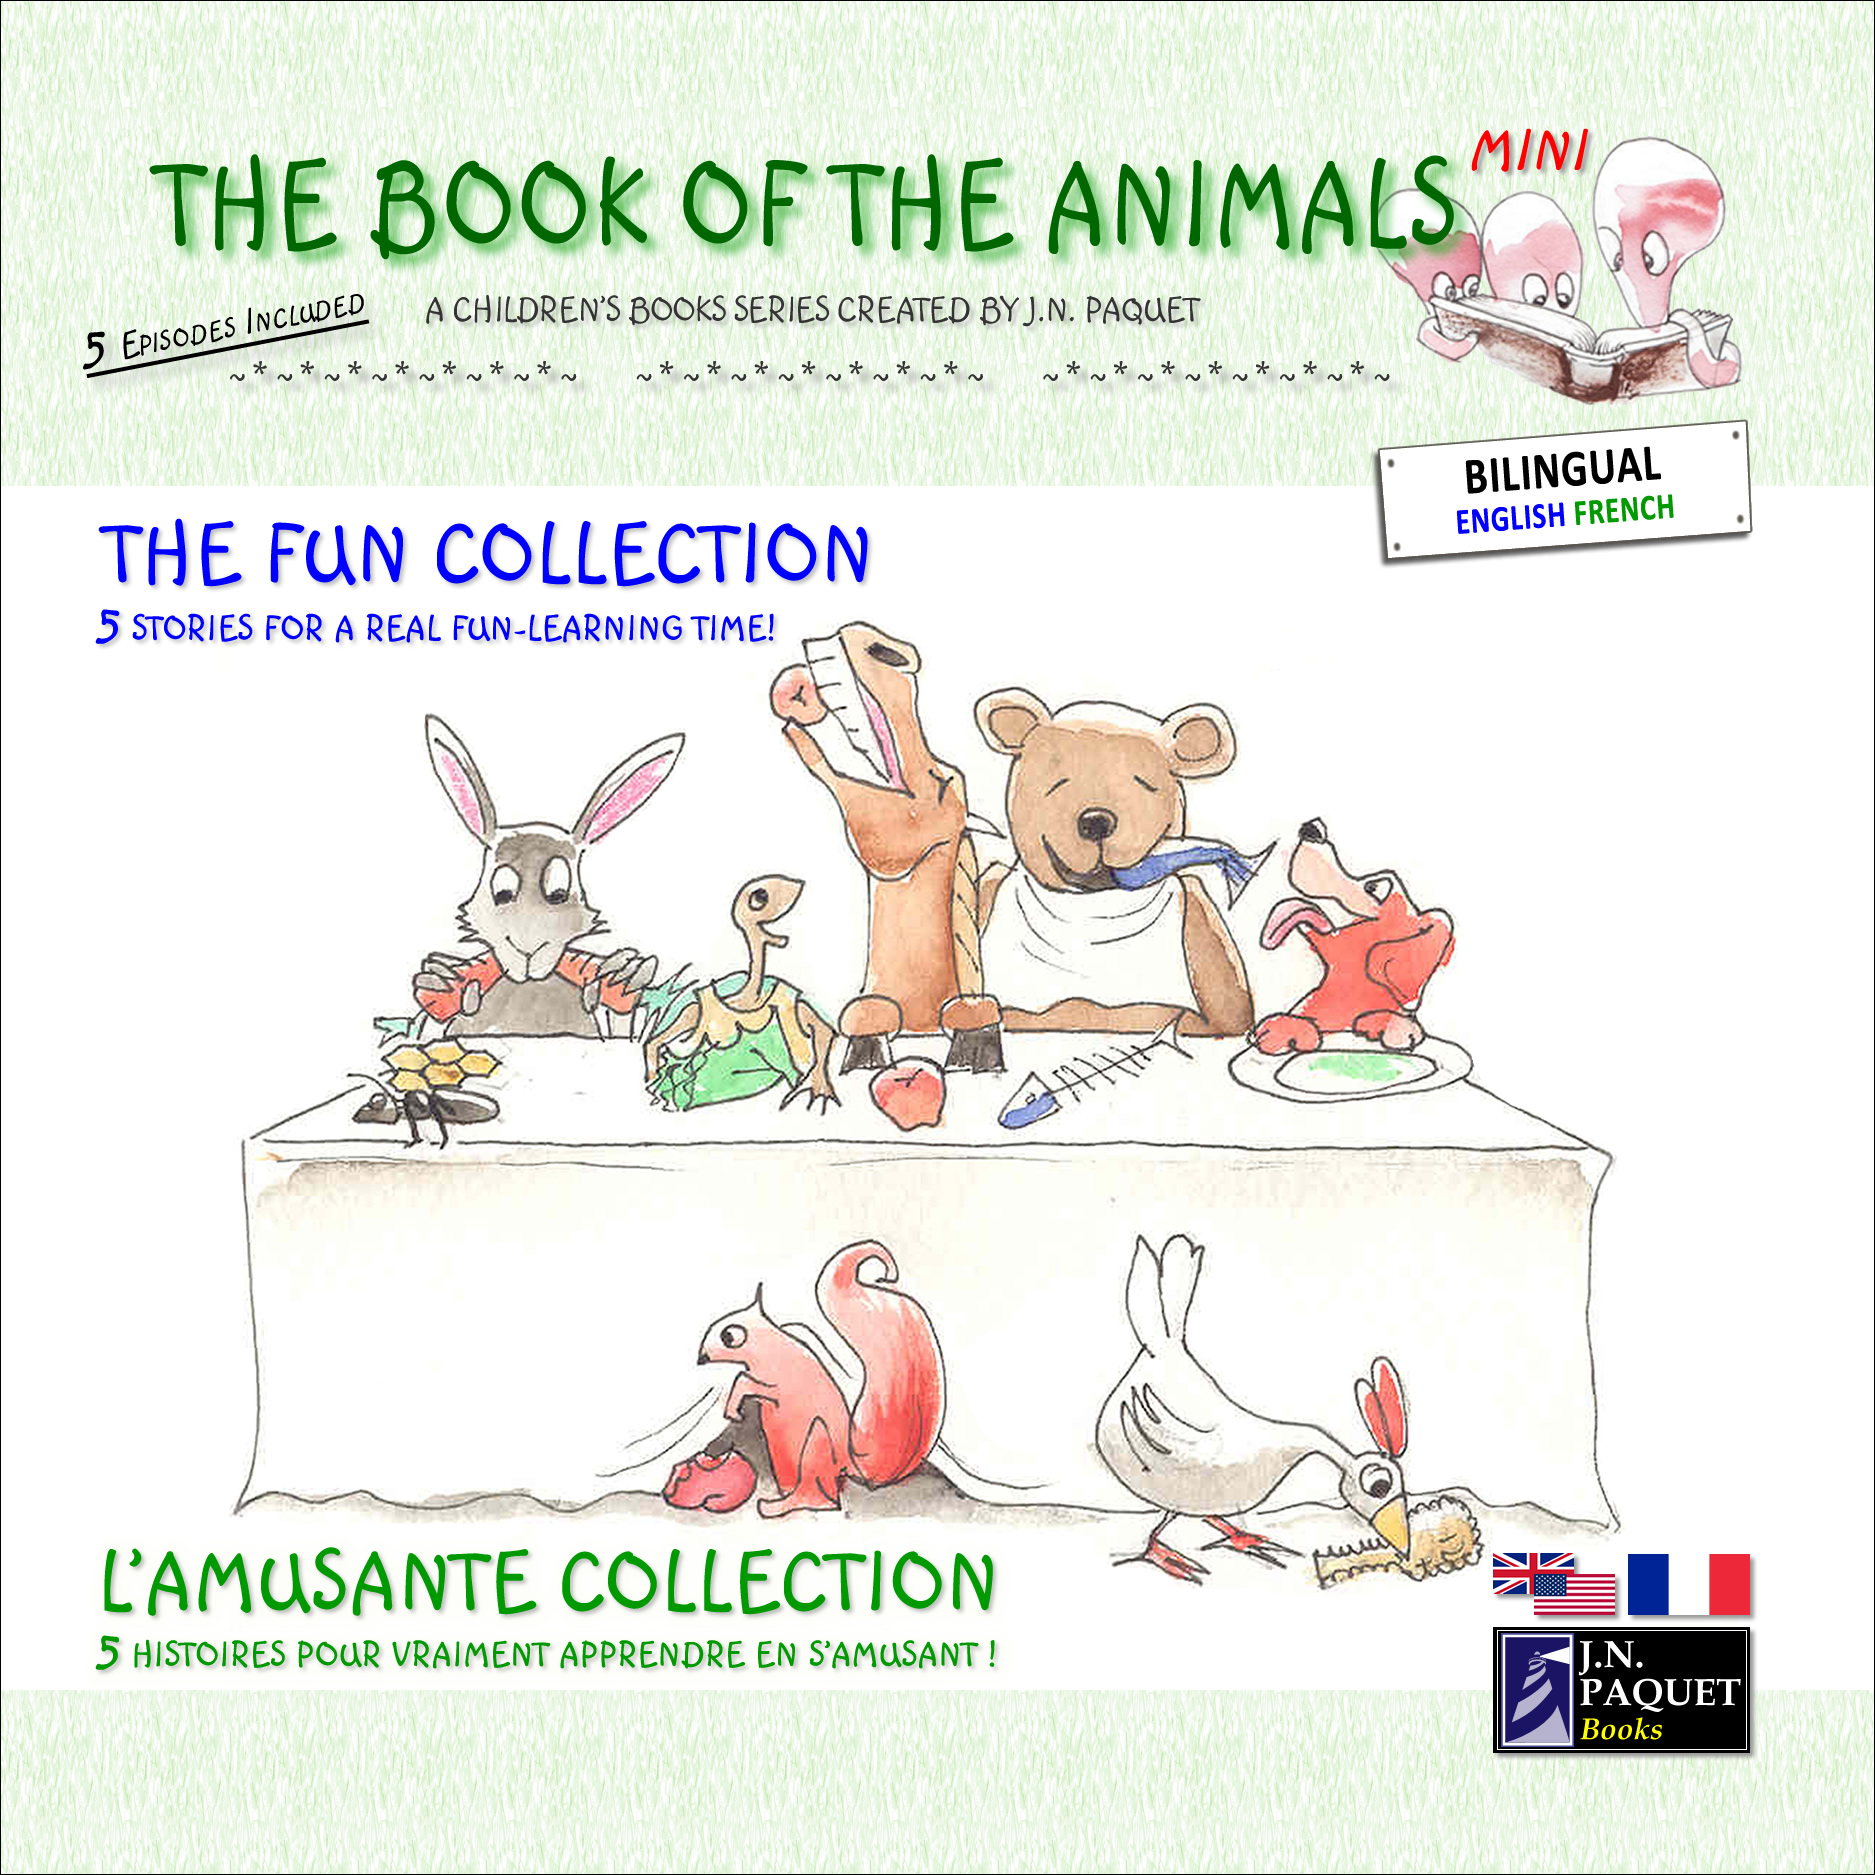 The Book of The Animals - Mini - The Fun Collection (Bilingual English-French)